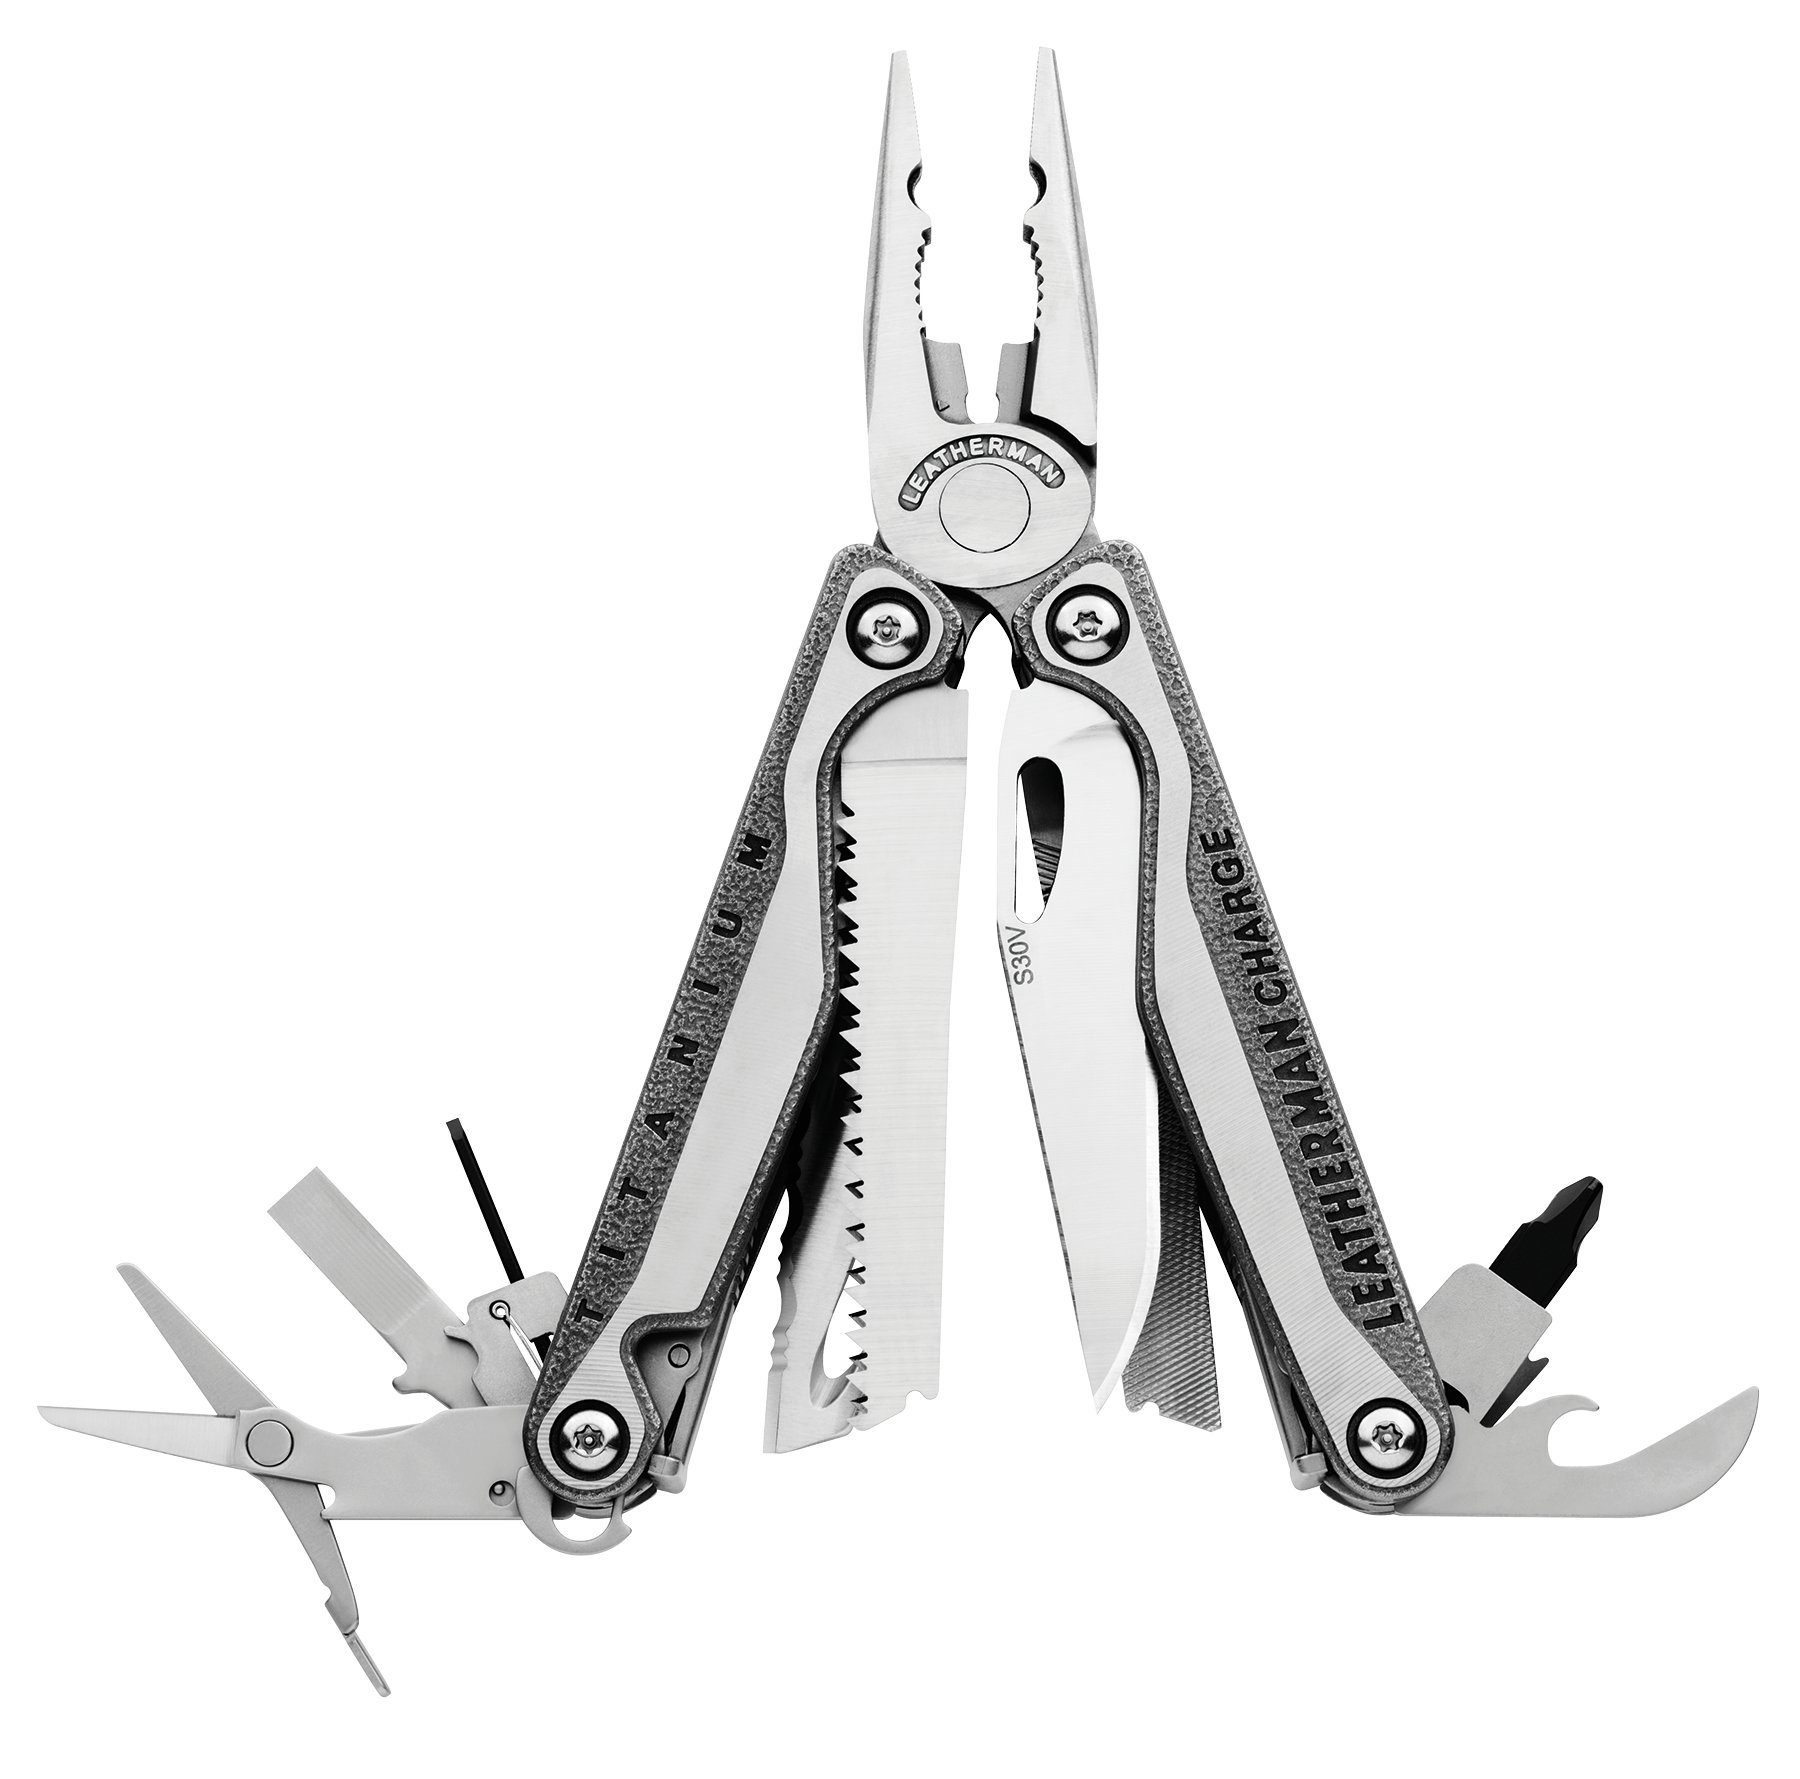 Leatherman - Charge TTI Multi-Tool, Stainless Steel with Leather Sheath (FFP)